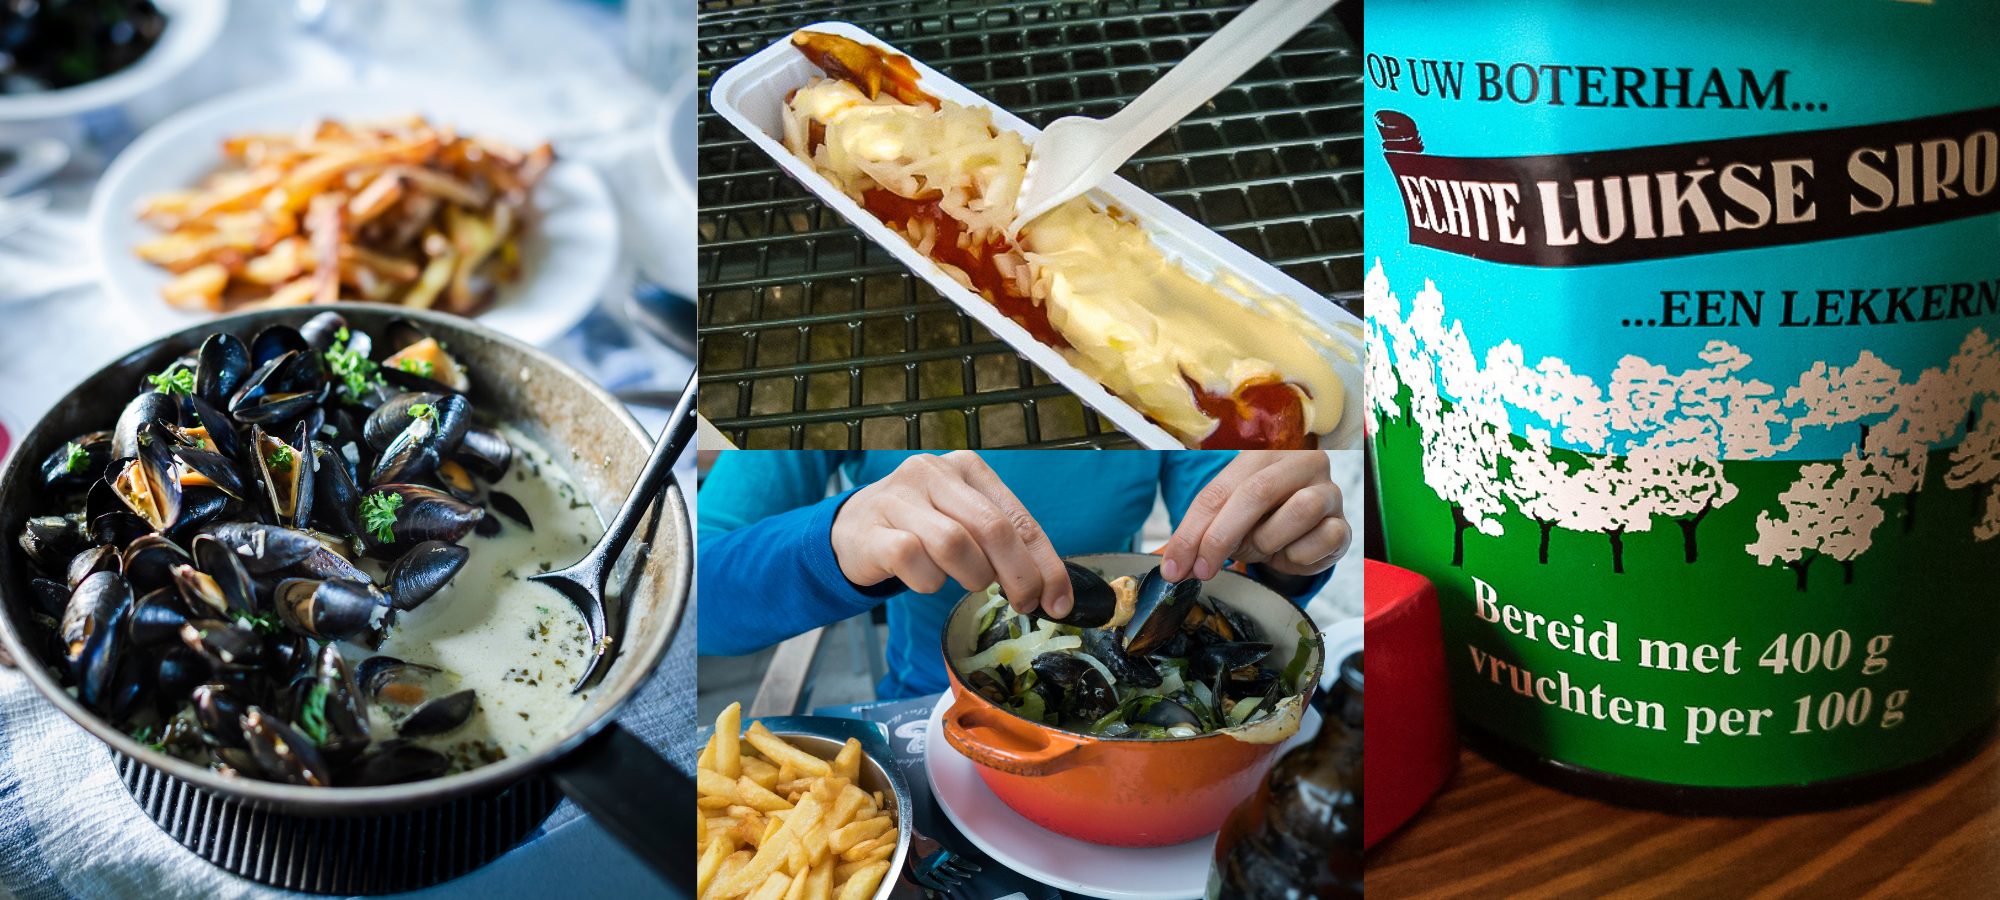 Image collage featuring the Belgian national dish of mussels and ther meals